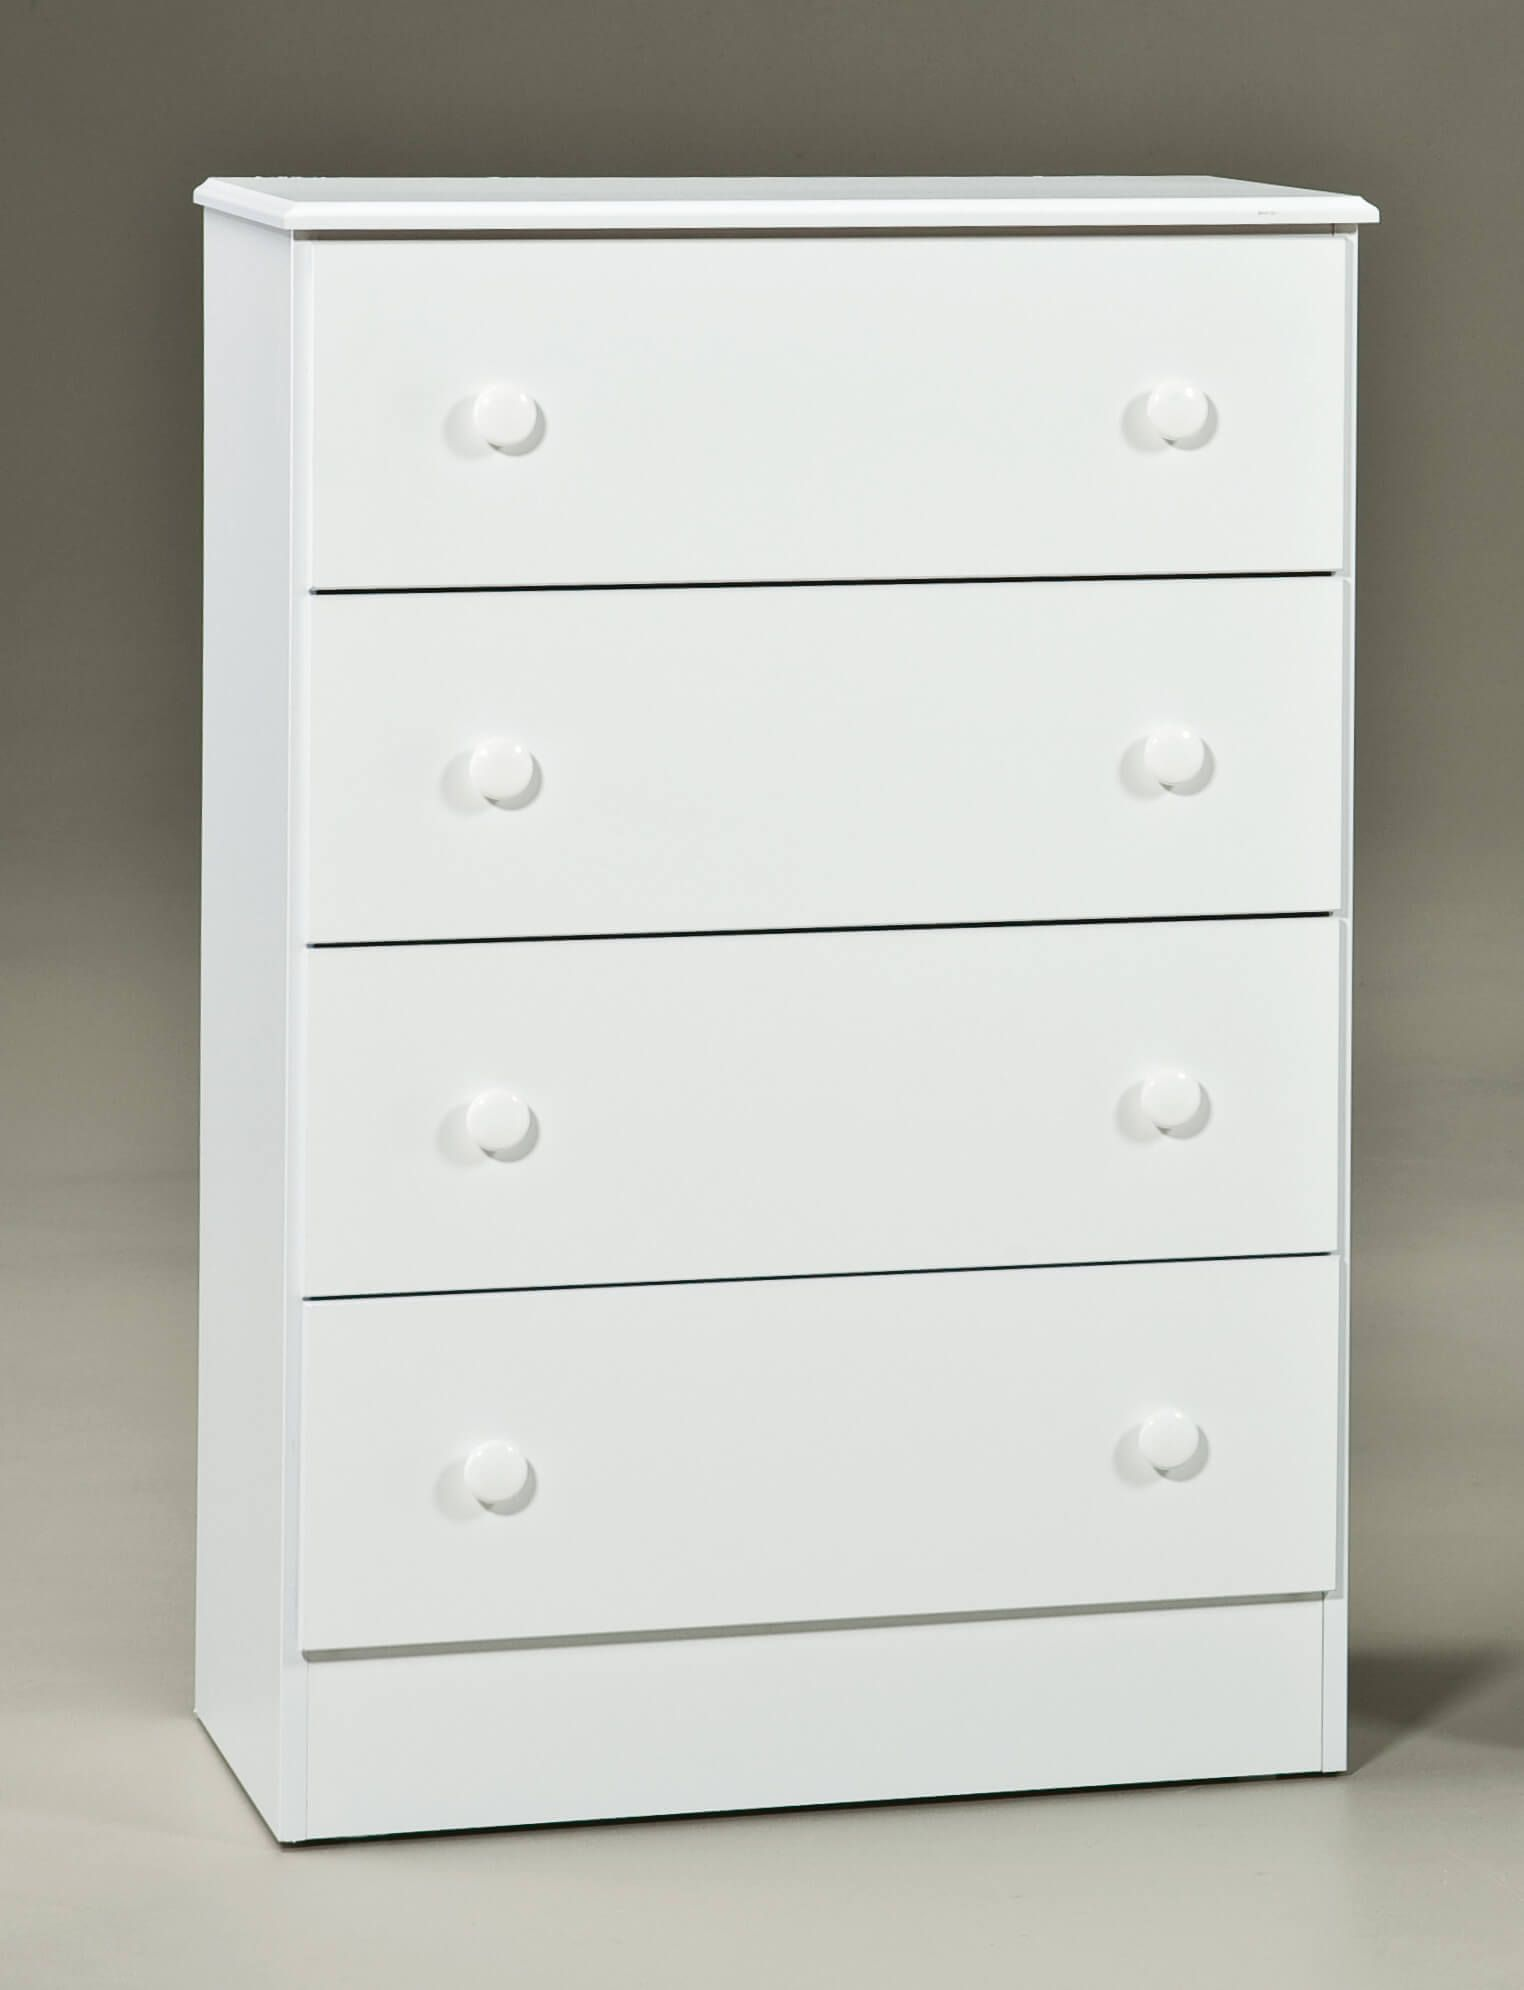 Kith White 4 Drawer Chest Shabby Chic Shabby Chic Furniture Chest Of Drawers [ 1990 x 1524 Pixel ]